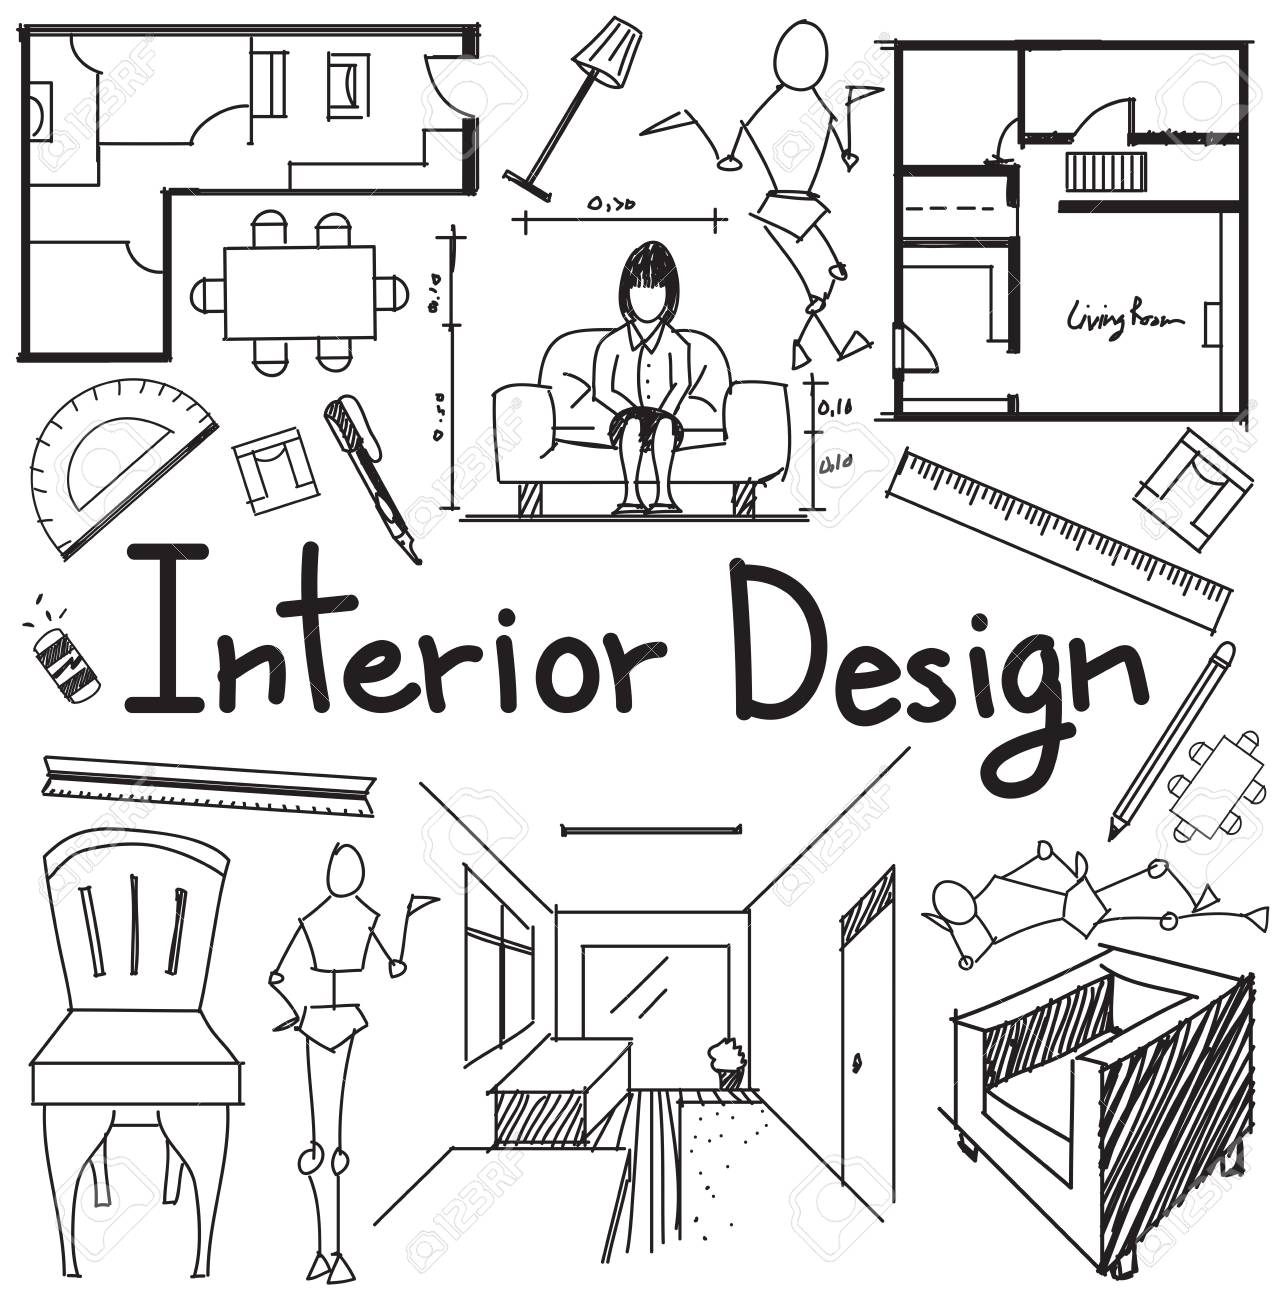 Interior design and building blueprint profession and education interior design and building blueprint profession and education handwriting doodle tool sign and symbol in white malvernweather Gallery